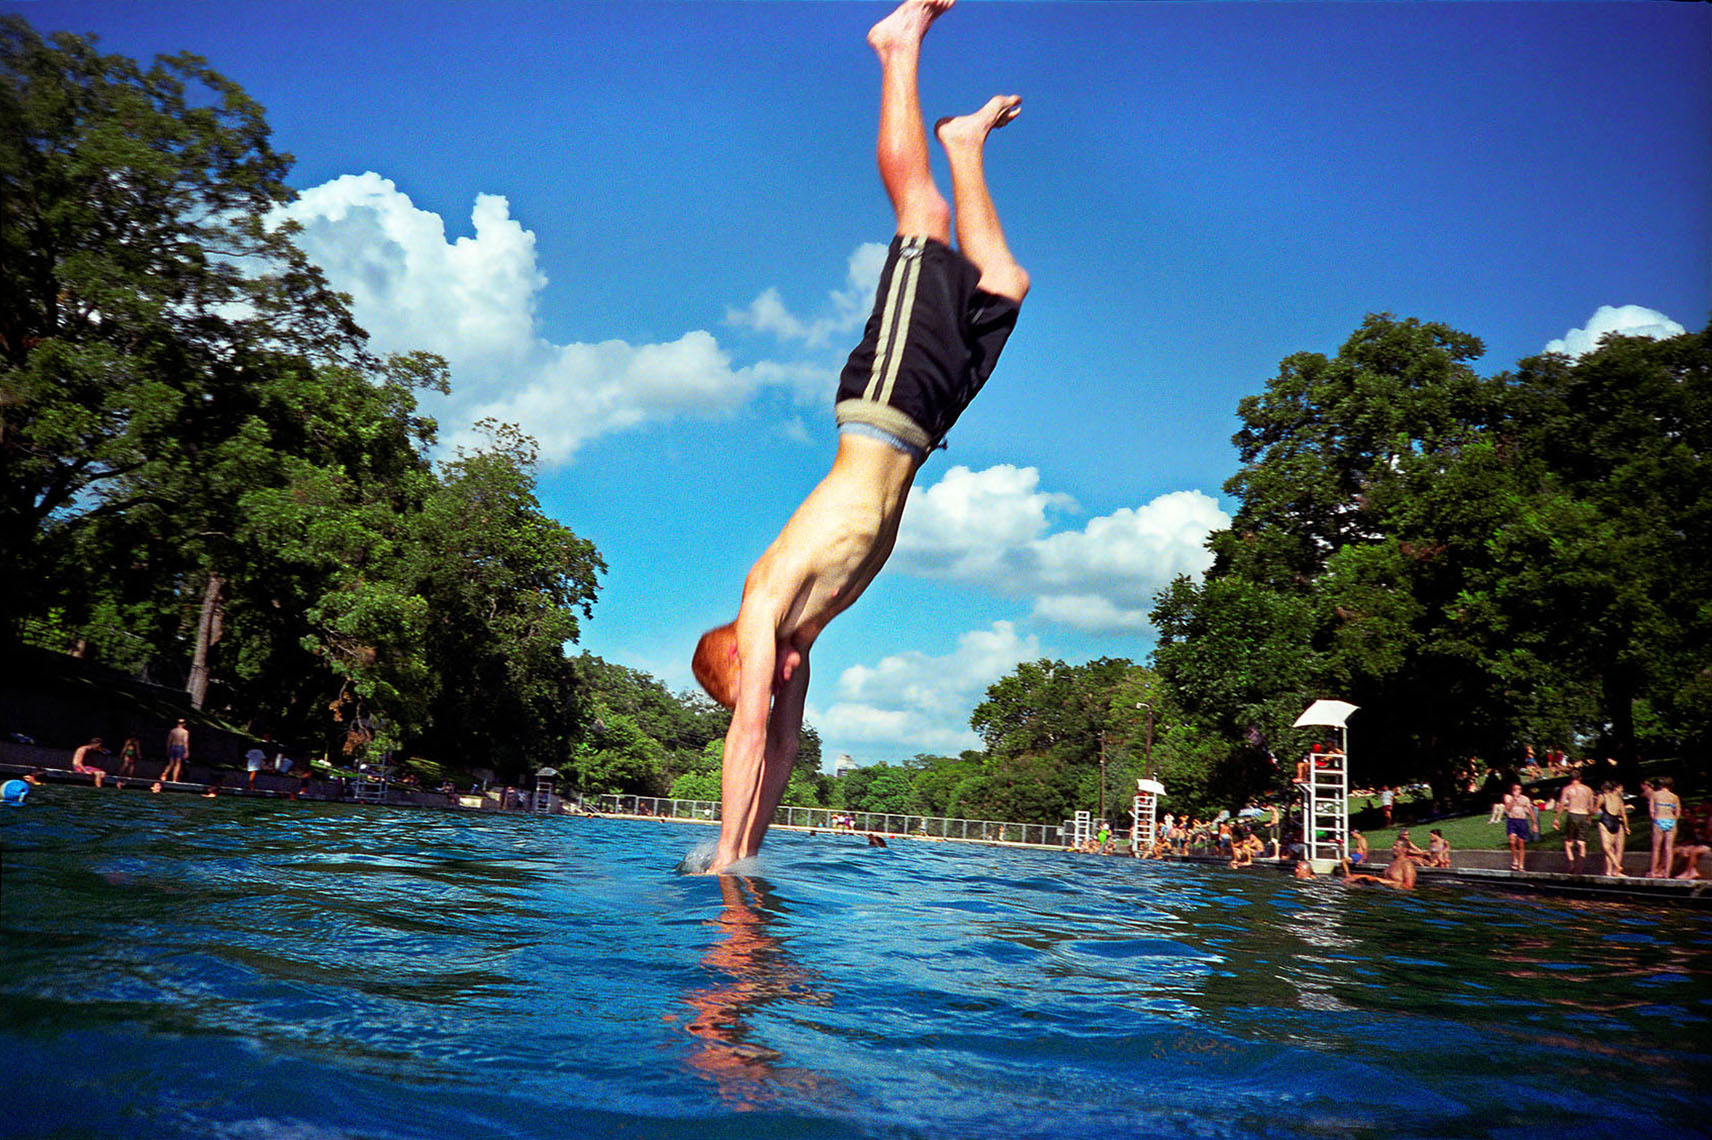 1146Barton Springs, Spring fed pool, boy diving, breaking water surface